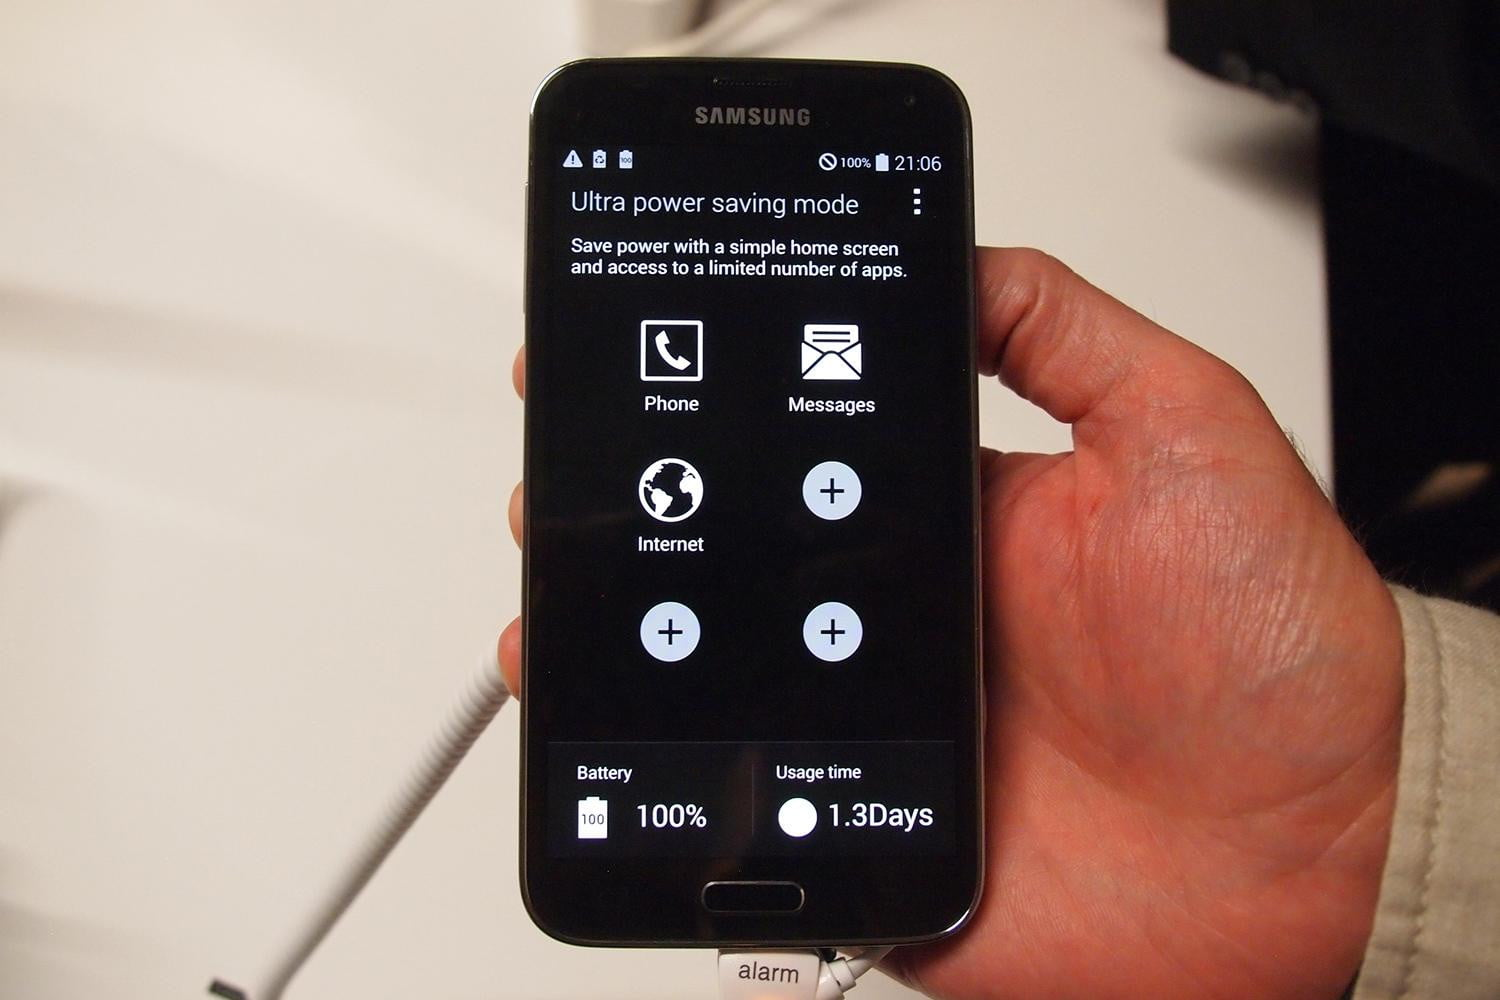 how to change home screen on galaxy s5 mini